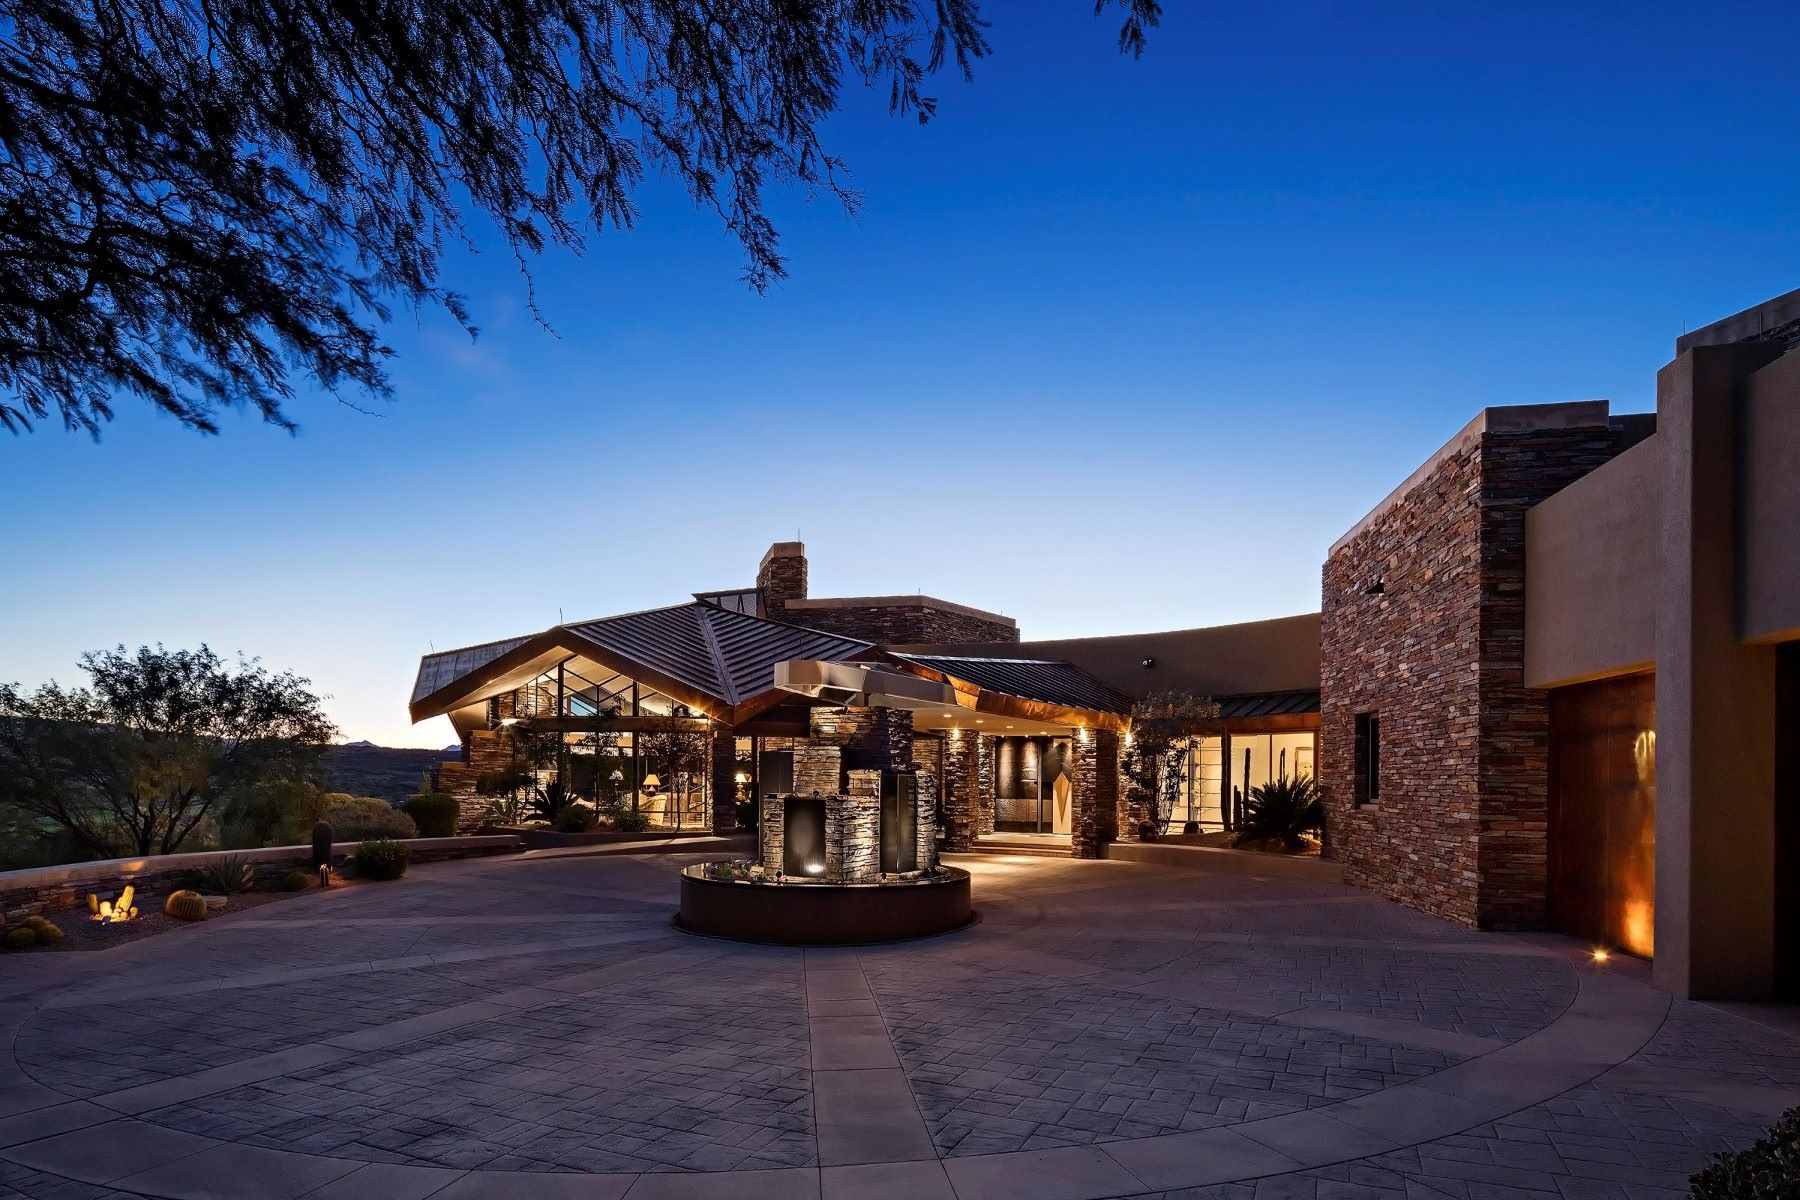 一戸建て のために 売買 アット Timeless contemporary estate in Desert Mountain 9625 E Aw Tillinghast Rd, Scottsdale, アリゾナ, 85262 アメリカ合衆国